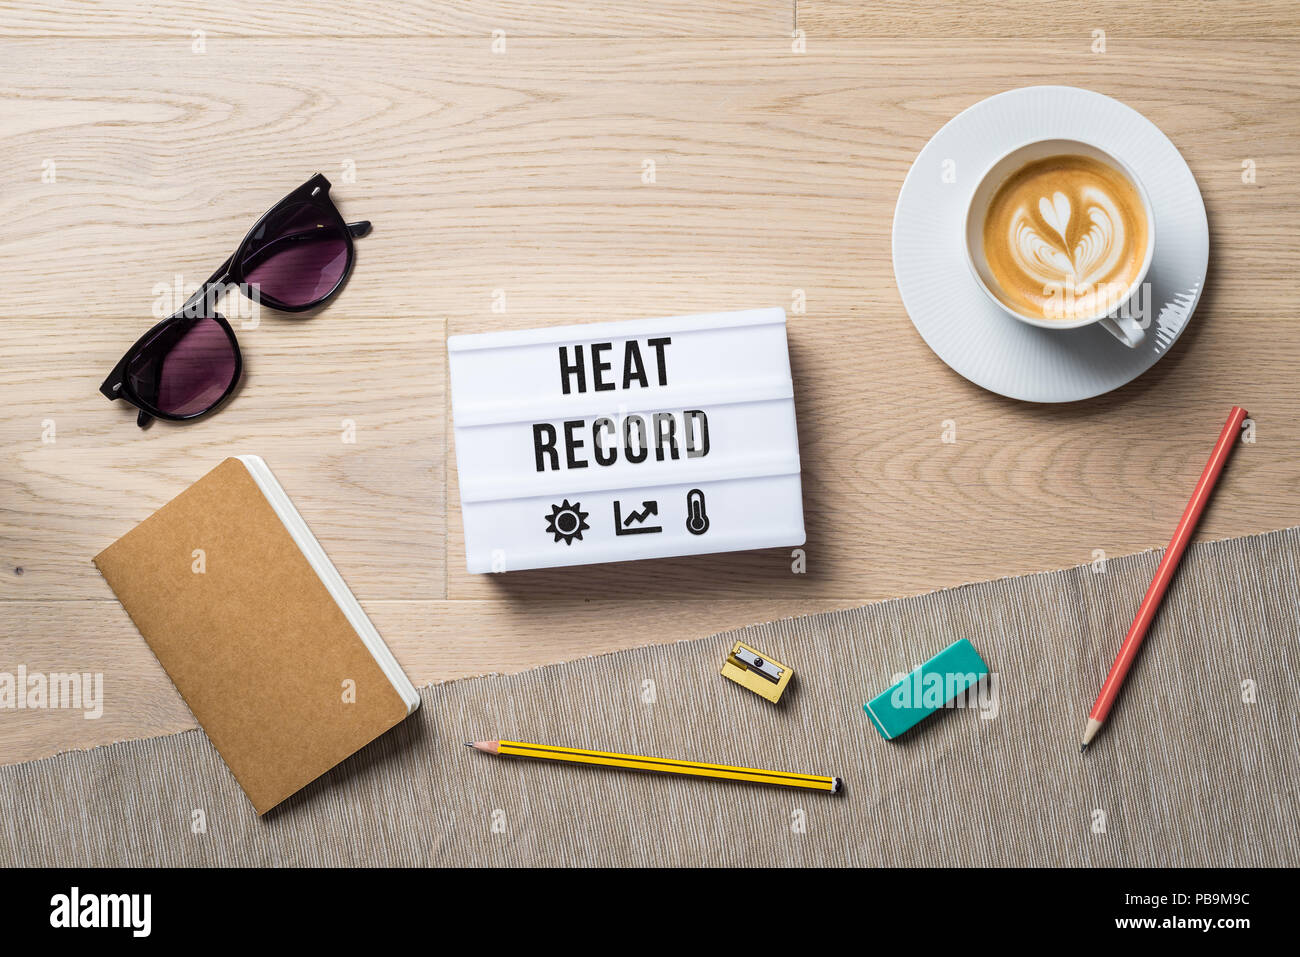 Heat record written on light box with sun and thermometer icons as flatlay from above of an office desk background with notebook - Stock Image